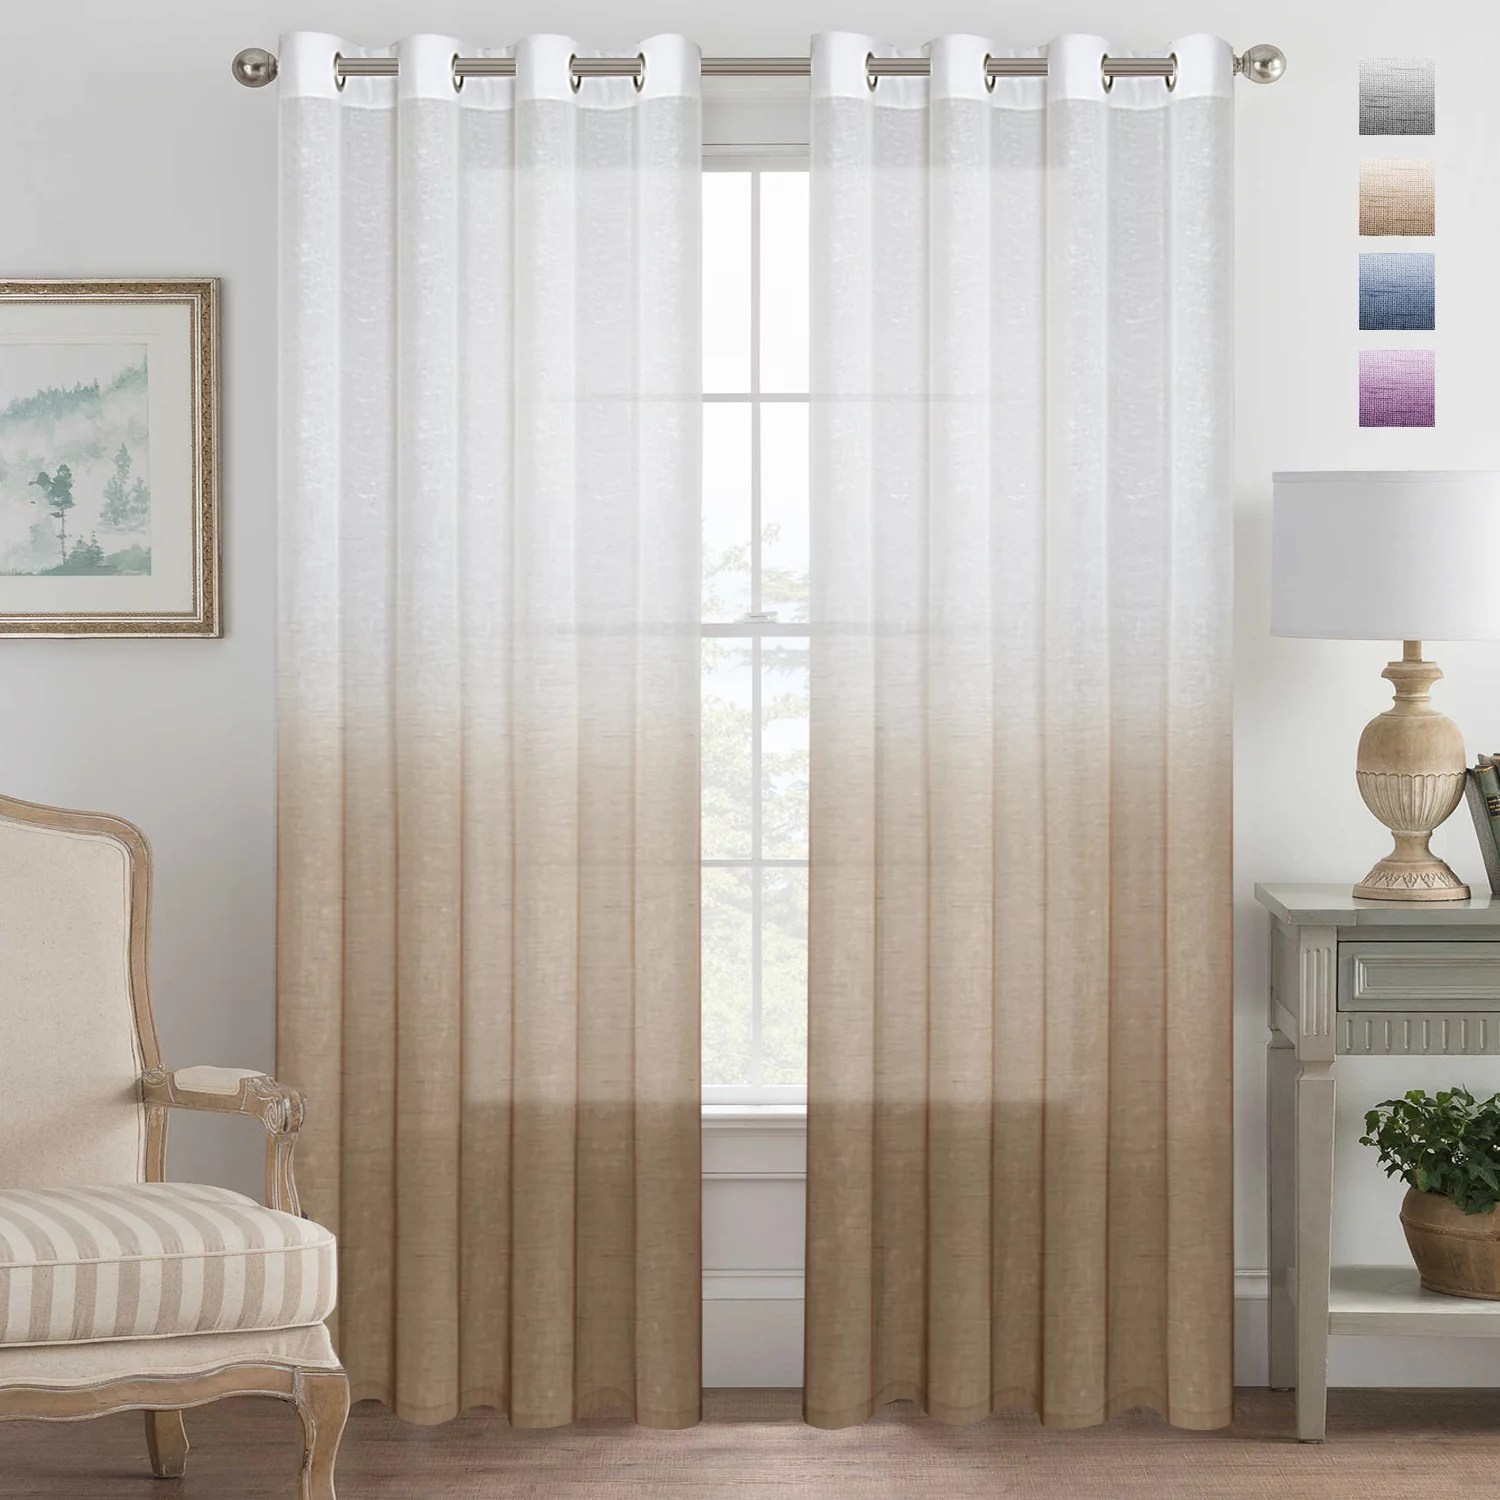 104 Inch Curtains Grey Curtains Natural Linen Mixed Semi Sheer Curtains 96 Inches